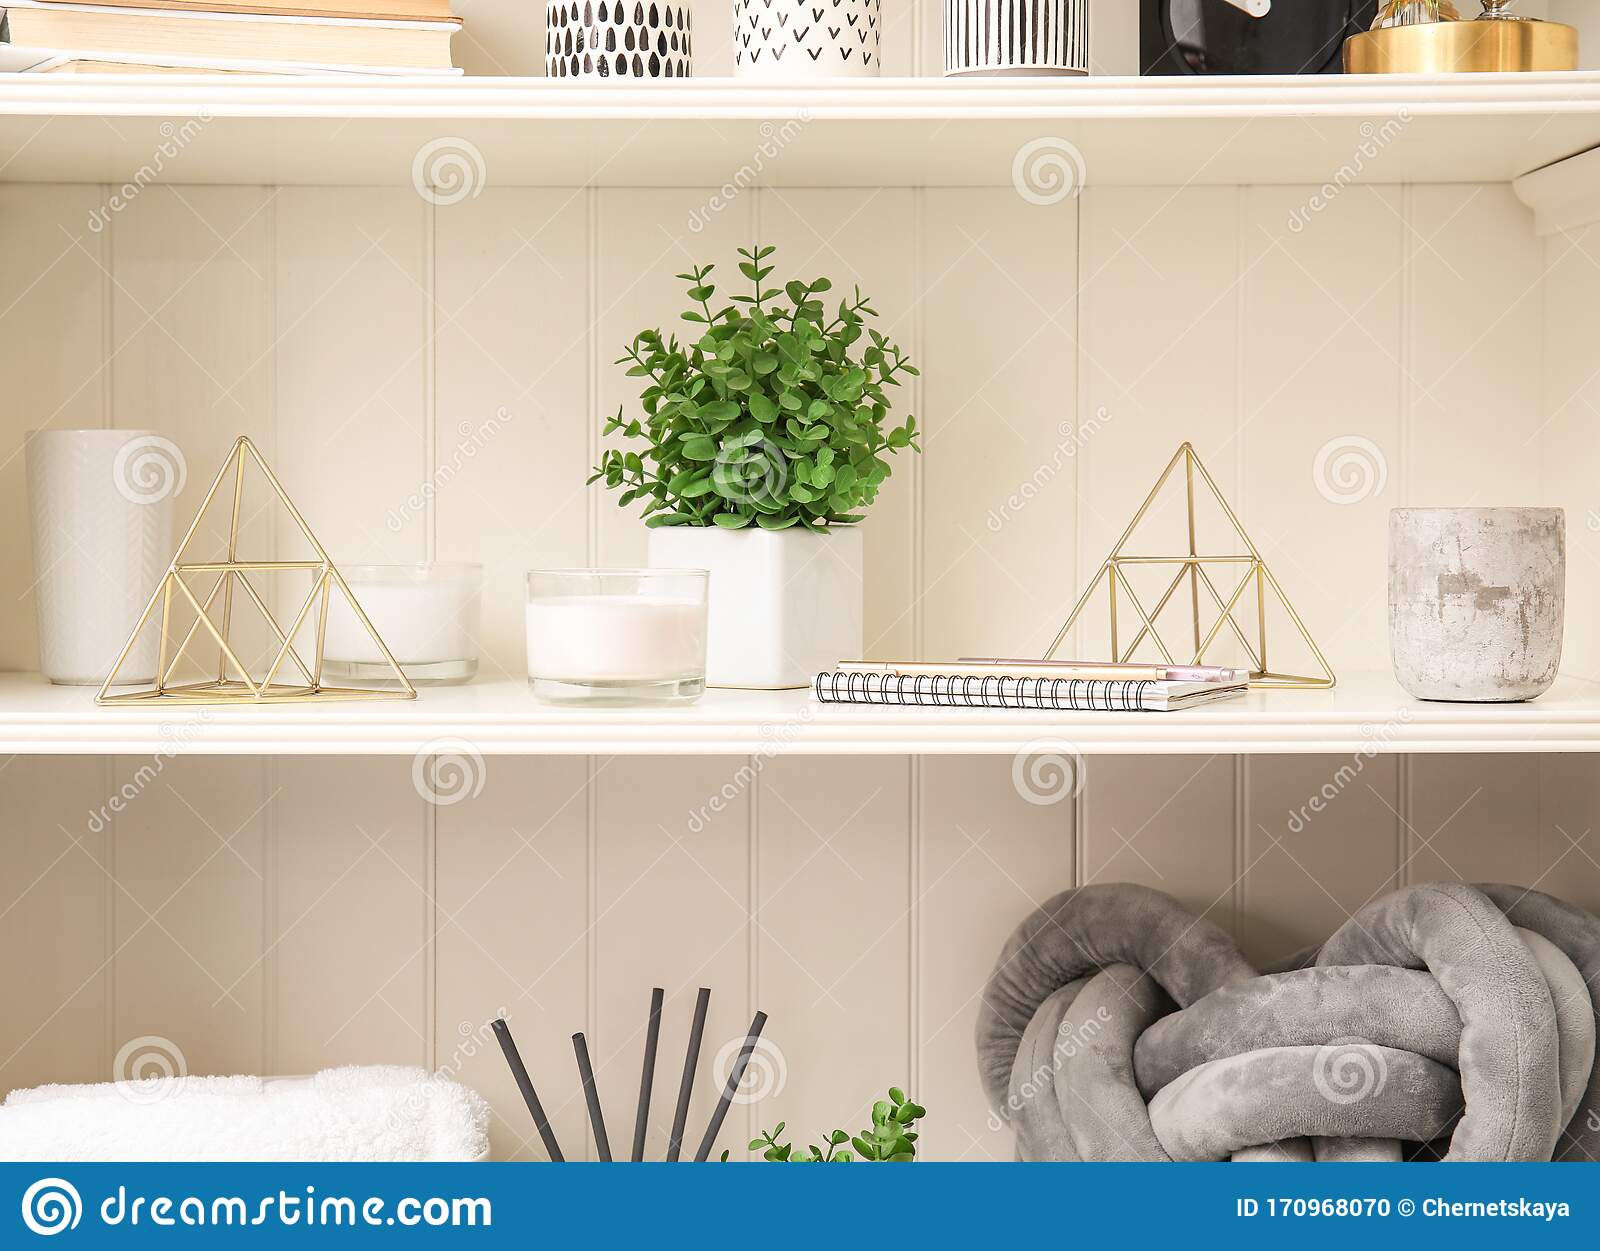 White Shelving Unit With Plant And Decorative Stuff Stock Photo Image Of Knitted Household 170968070